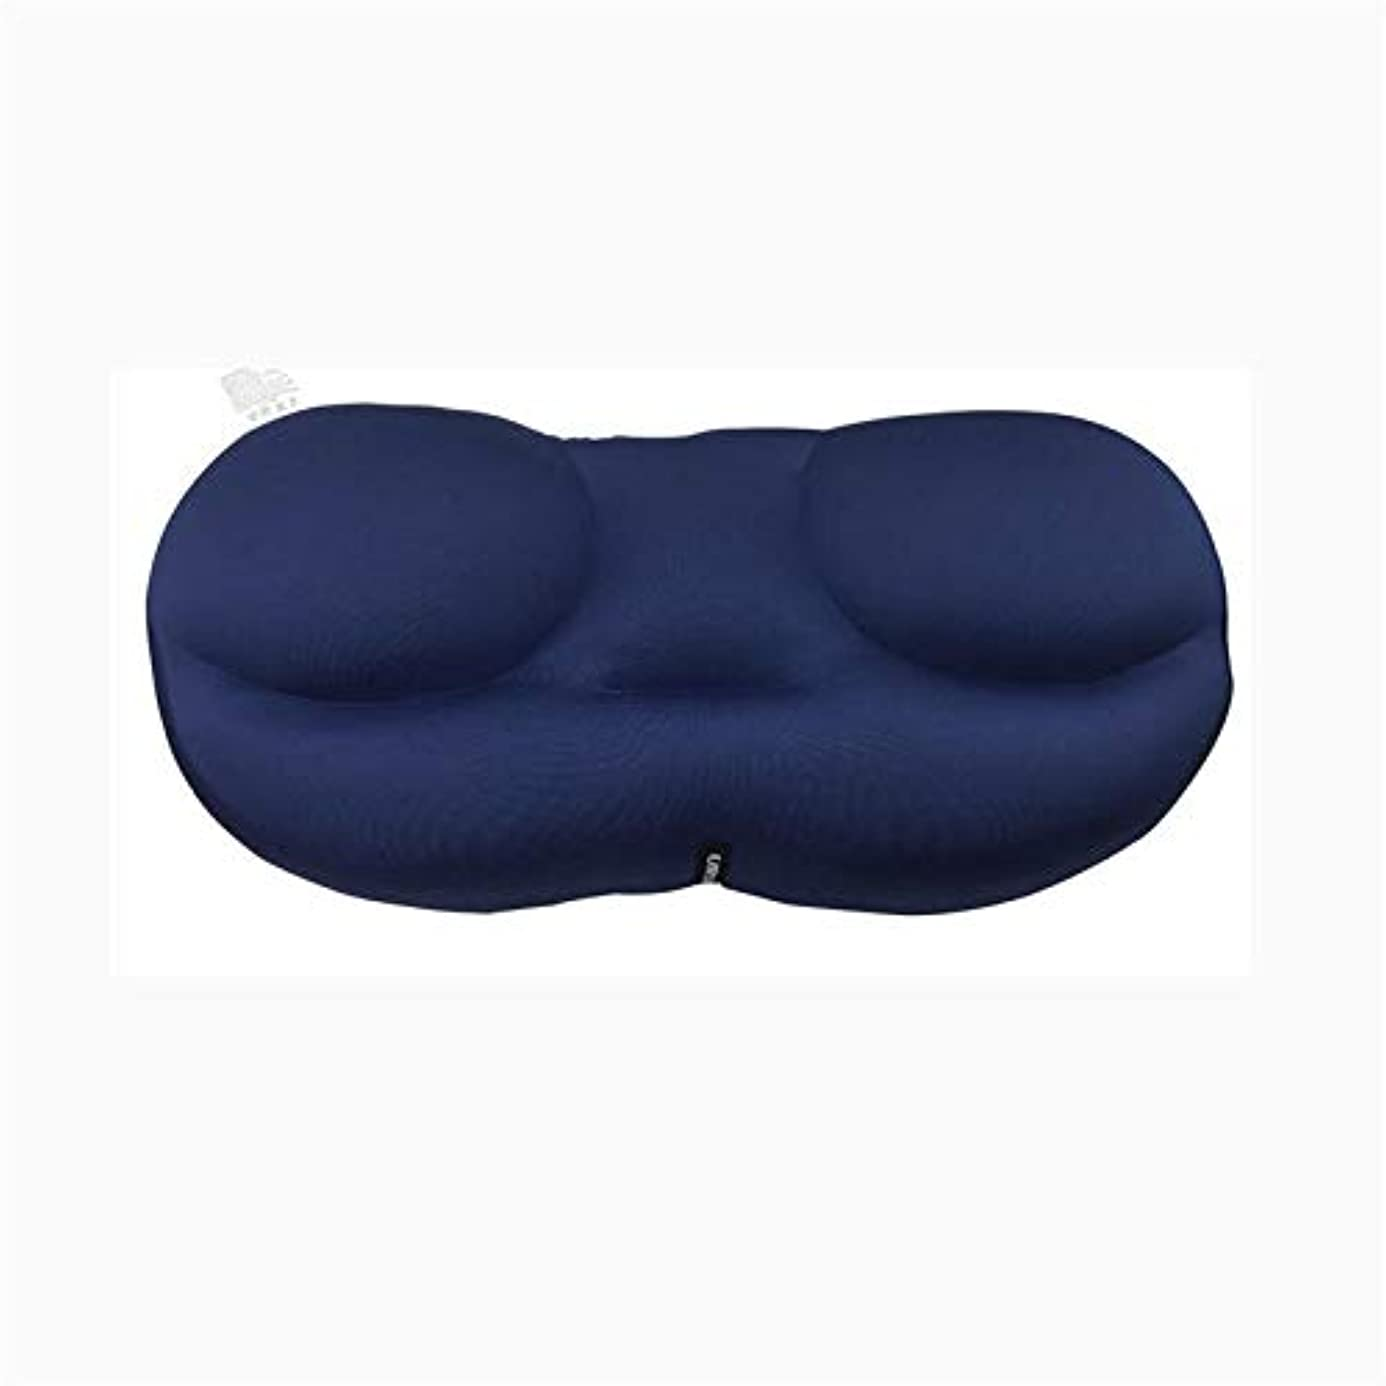 Body Pillows - Polyester Pillowcase Cover Air Balls Filling Beauty Ing Pillow Therapy Massage Headrest Pillows - Colorful Covers Sleep Theraputic Insert Cover Extra Surgery Decorative Tu